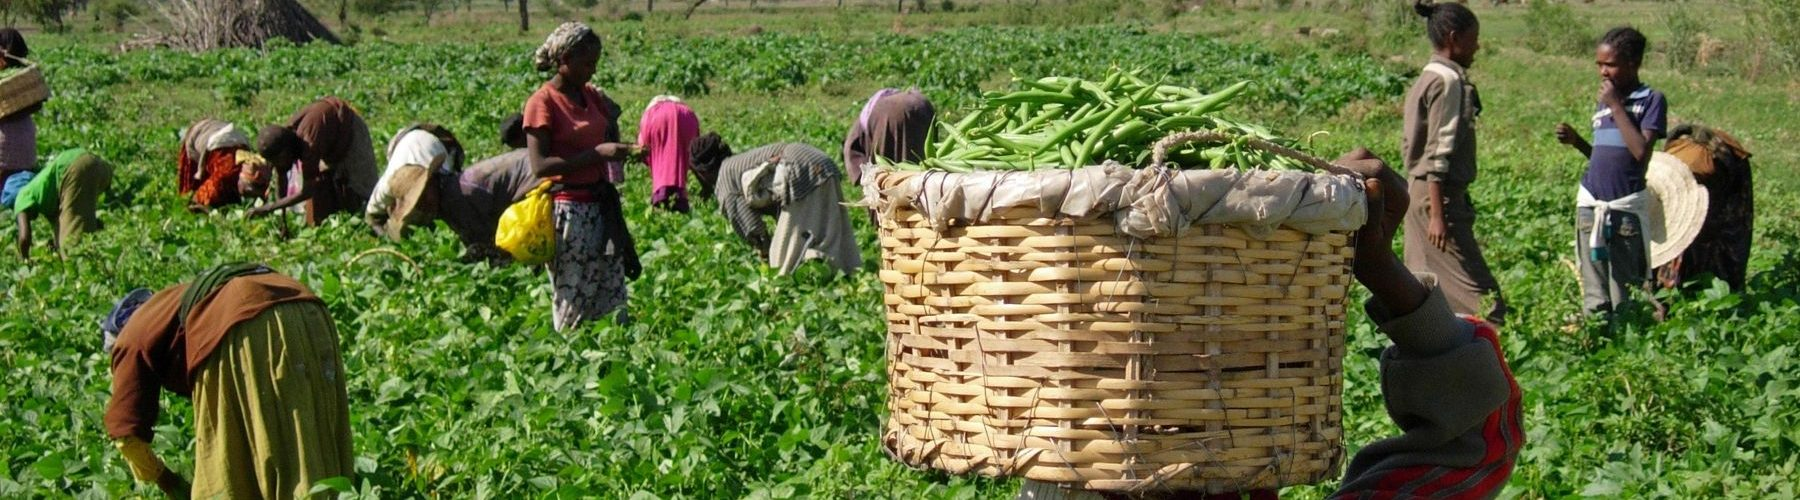 WEBINAR: The Fruits and Vegetable Value Chain In Ethiopia: Transformation, Prices, and Implications for Consumption and Nutrition